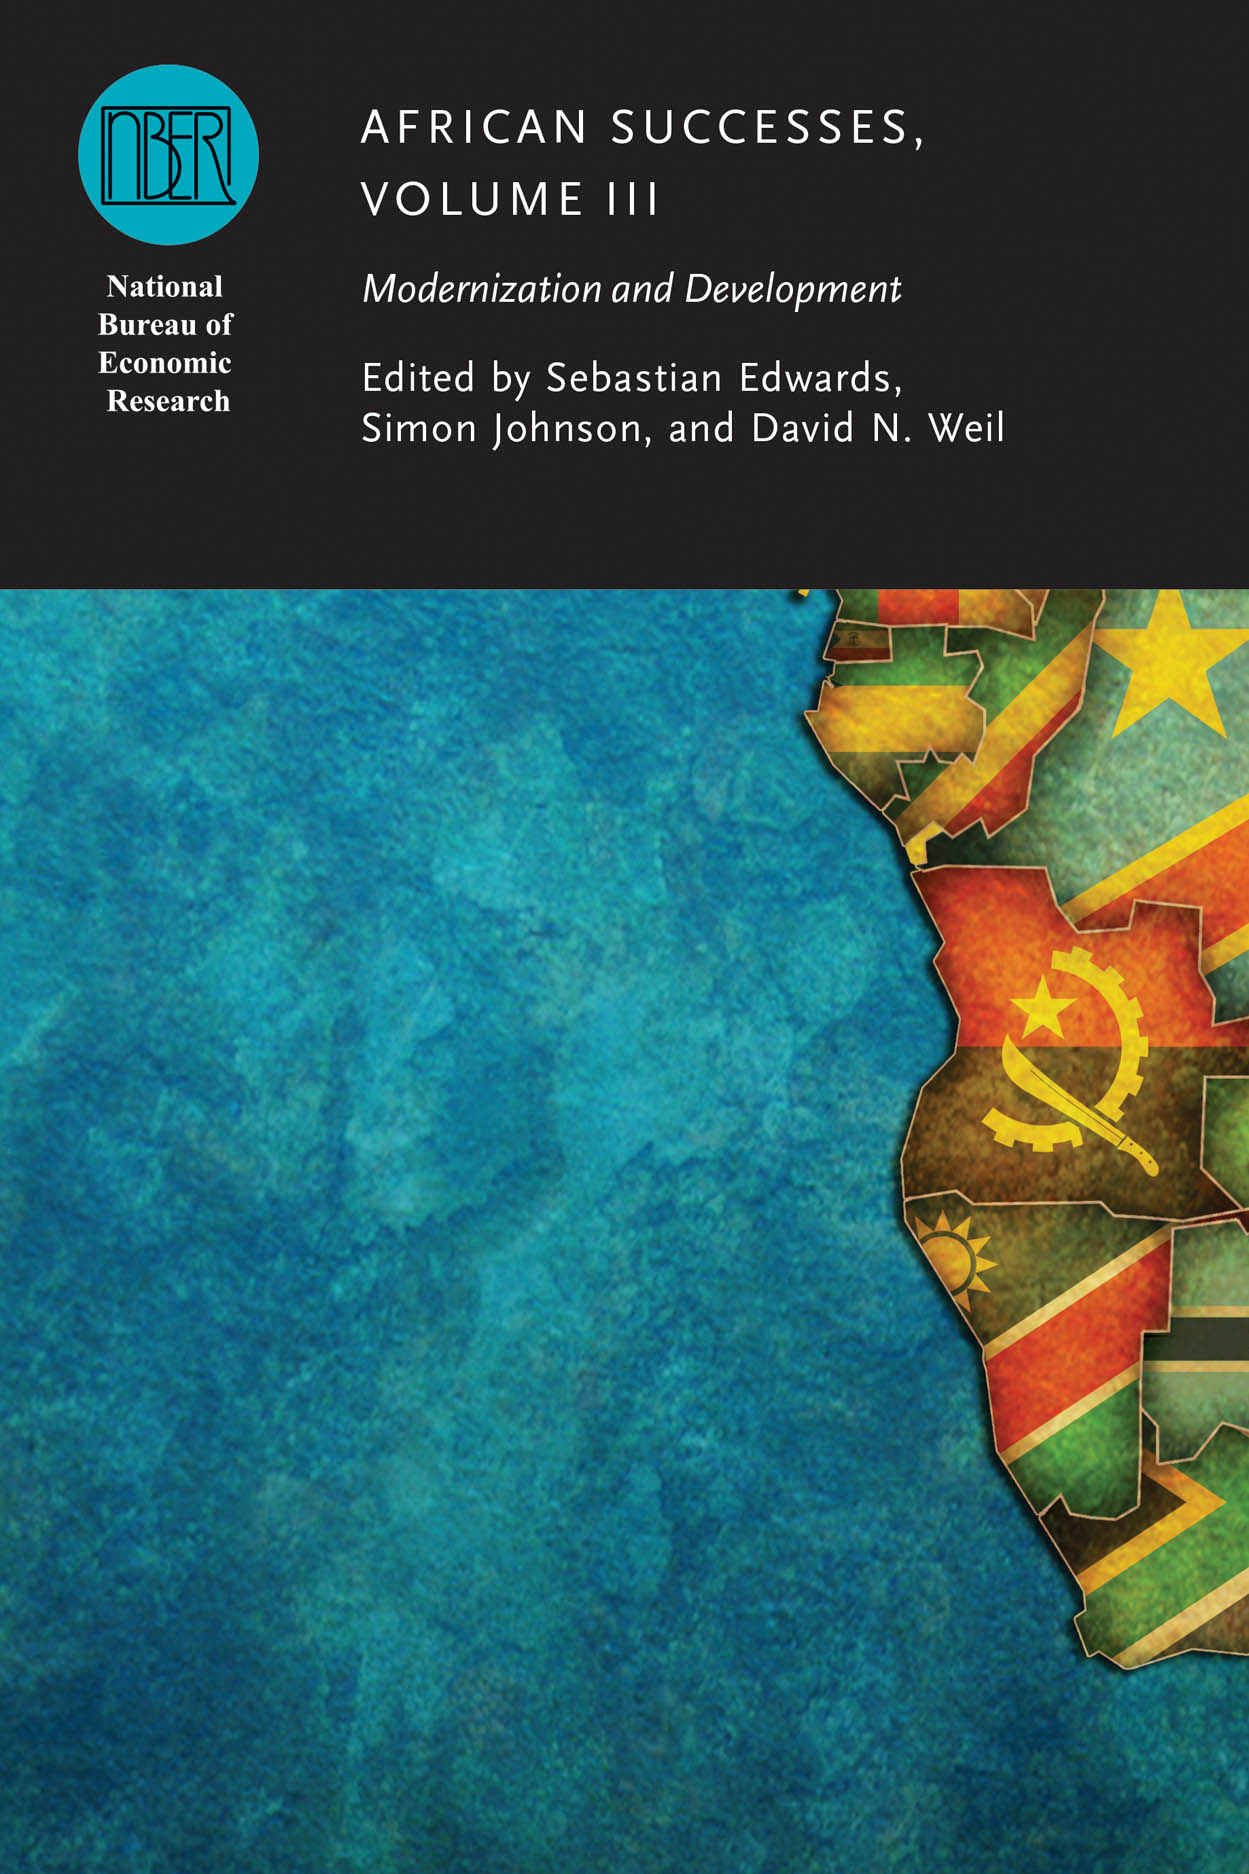 African Successes, Volume III: Modernization and Development